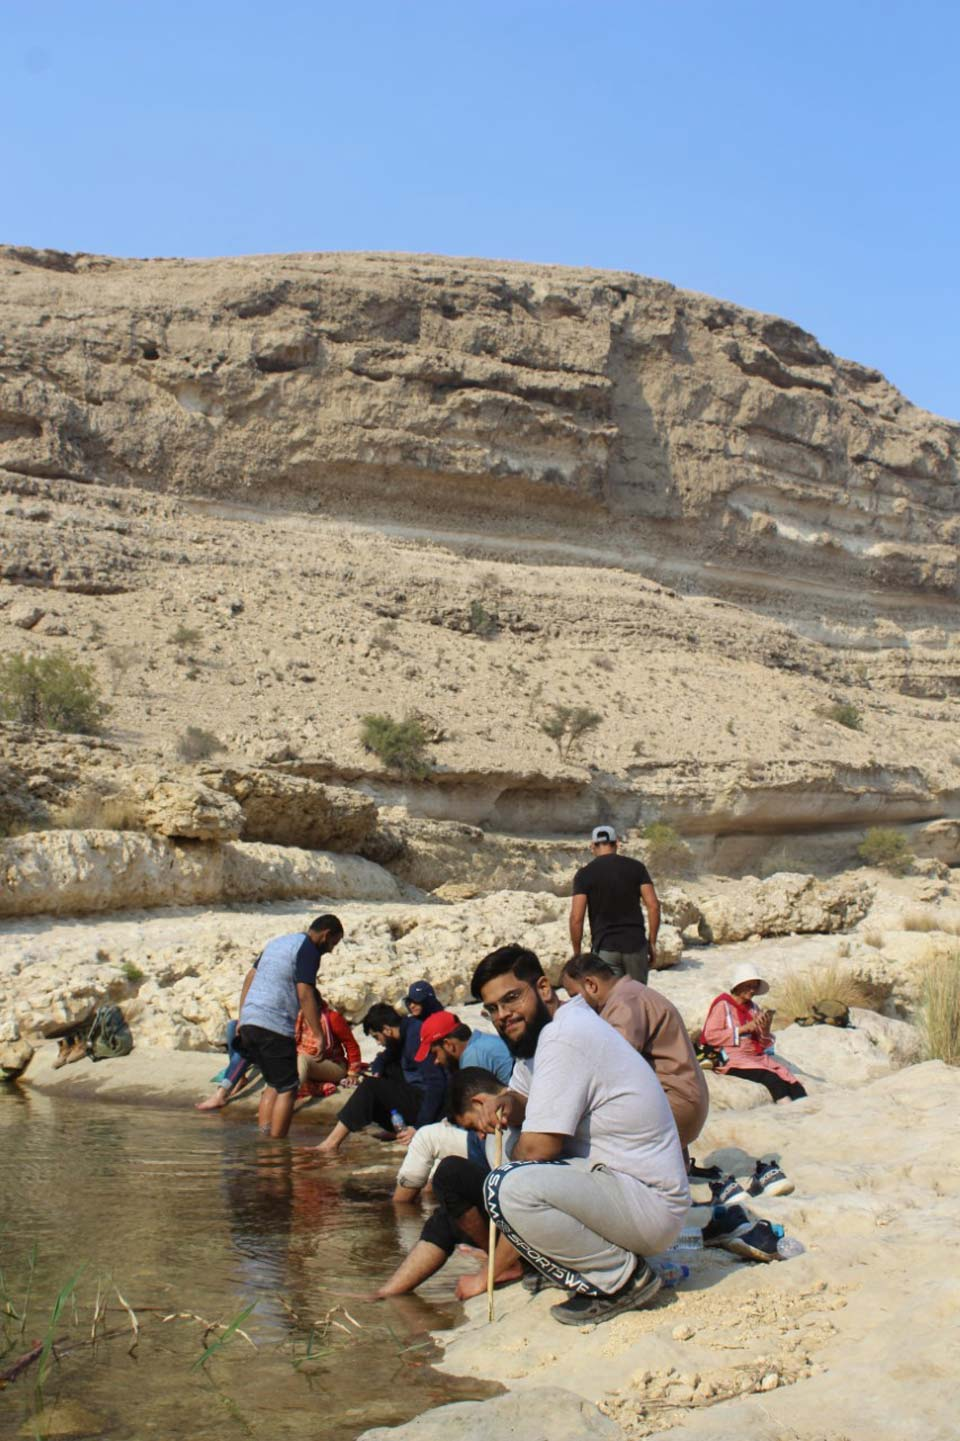 All the members are relaxing with their feet in the fresh water stream after trekking for an hour. They are getting ready to do an hour of trekking back to the Rani Kot Restaurant.